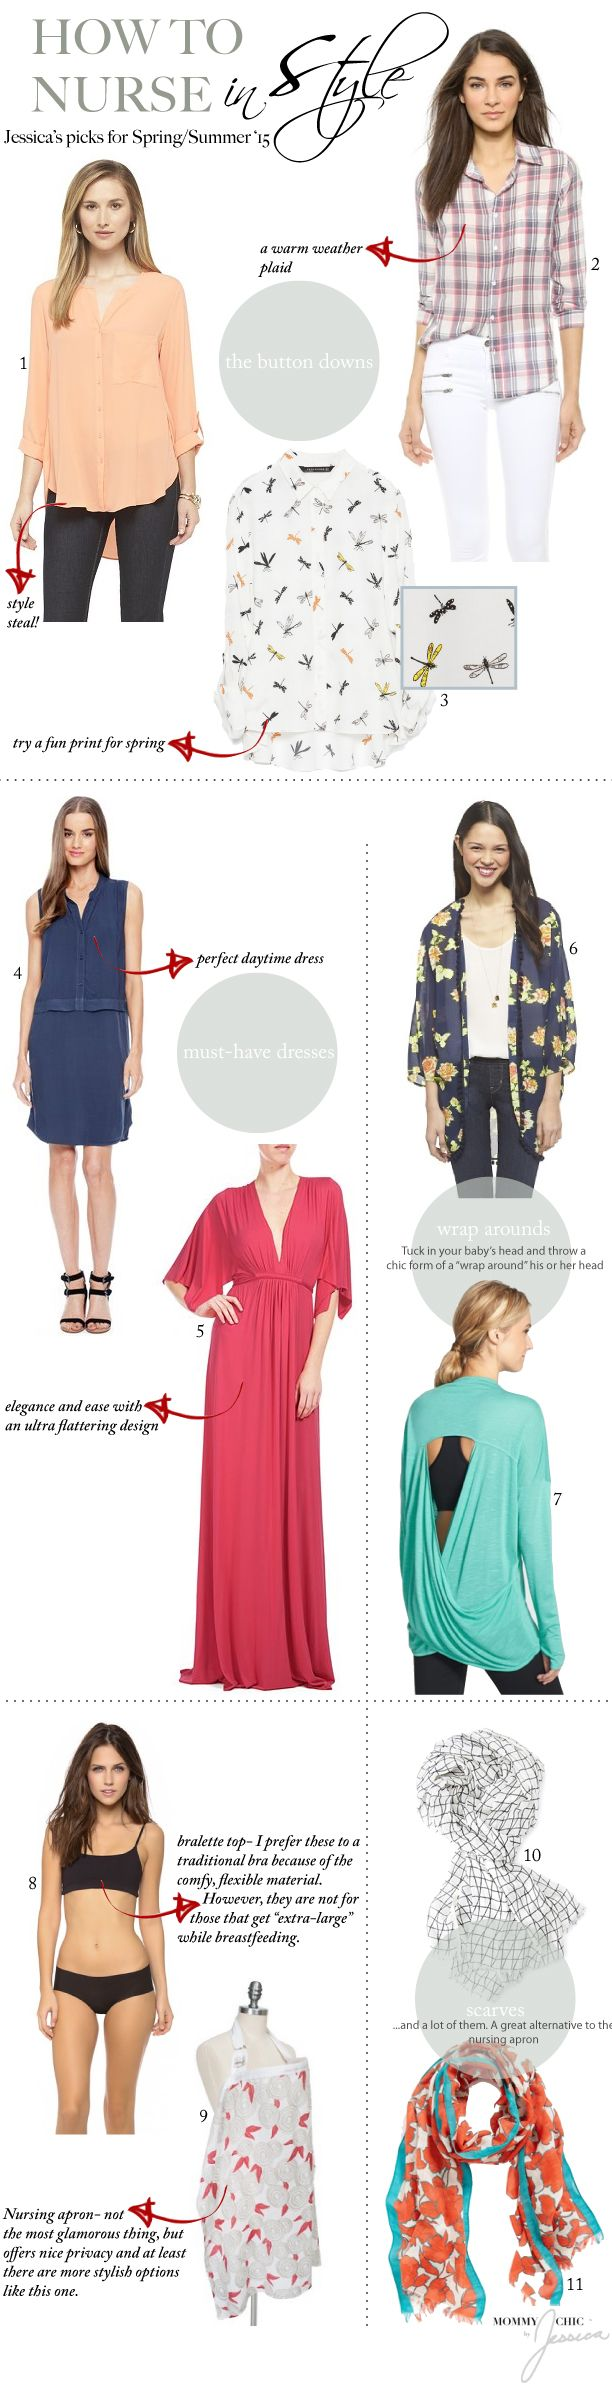 How to Nurse in Style   11 Nursing Friendly Pieces You Need In Your Wardrobe   www.mommasociety.com   Community of Modern Moms